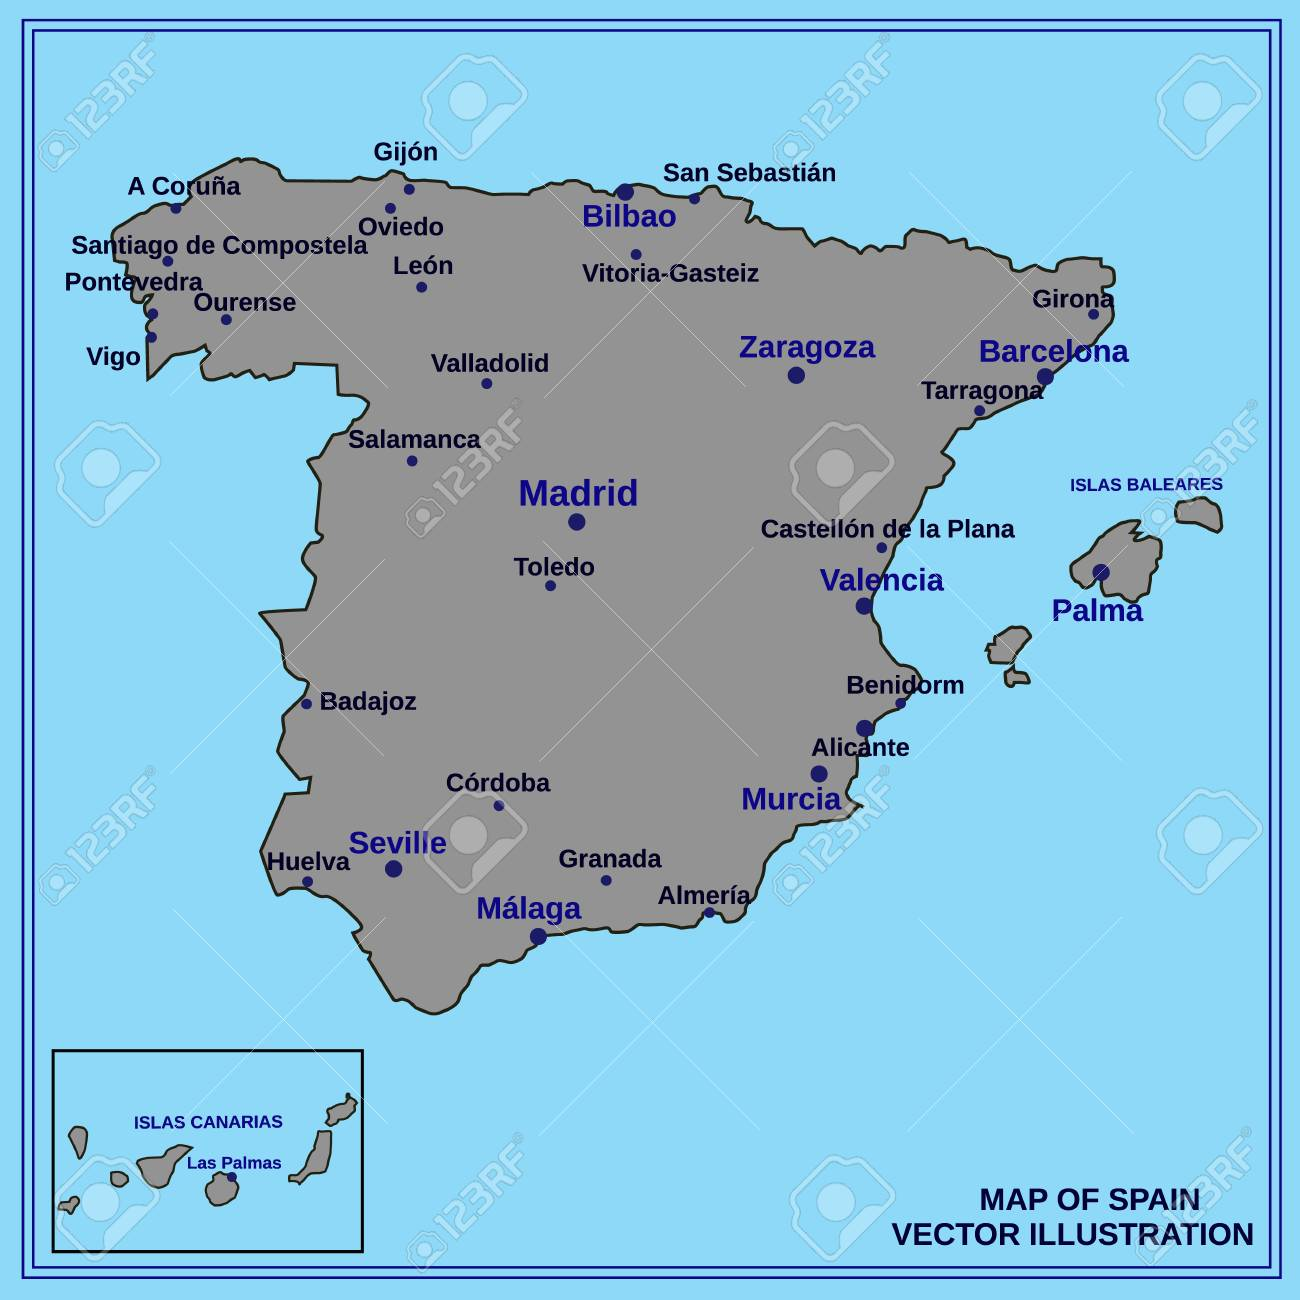 Spanish Map Of Spain.Map Of Spain Bright Illustration With Map Illustration With